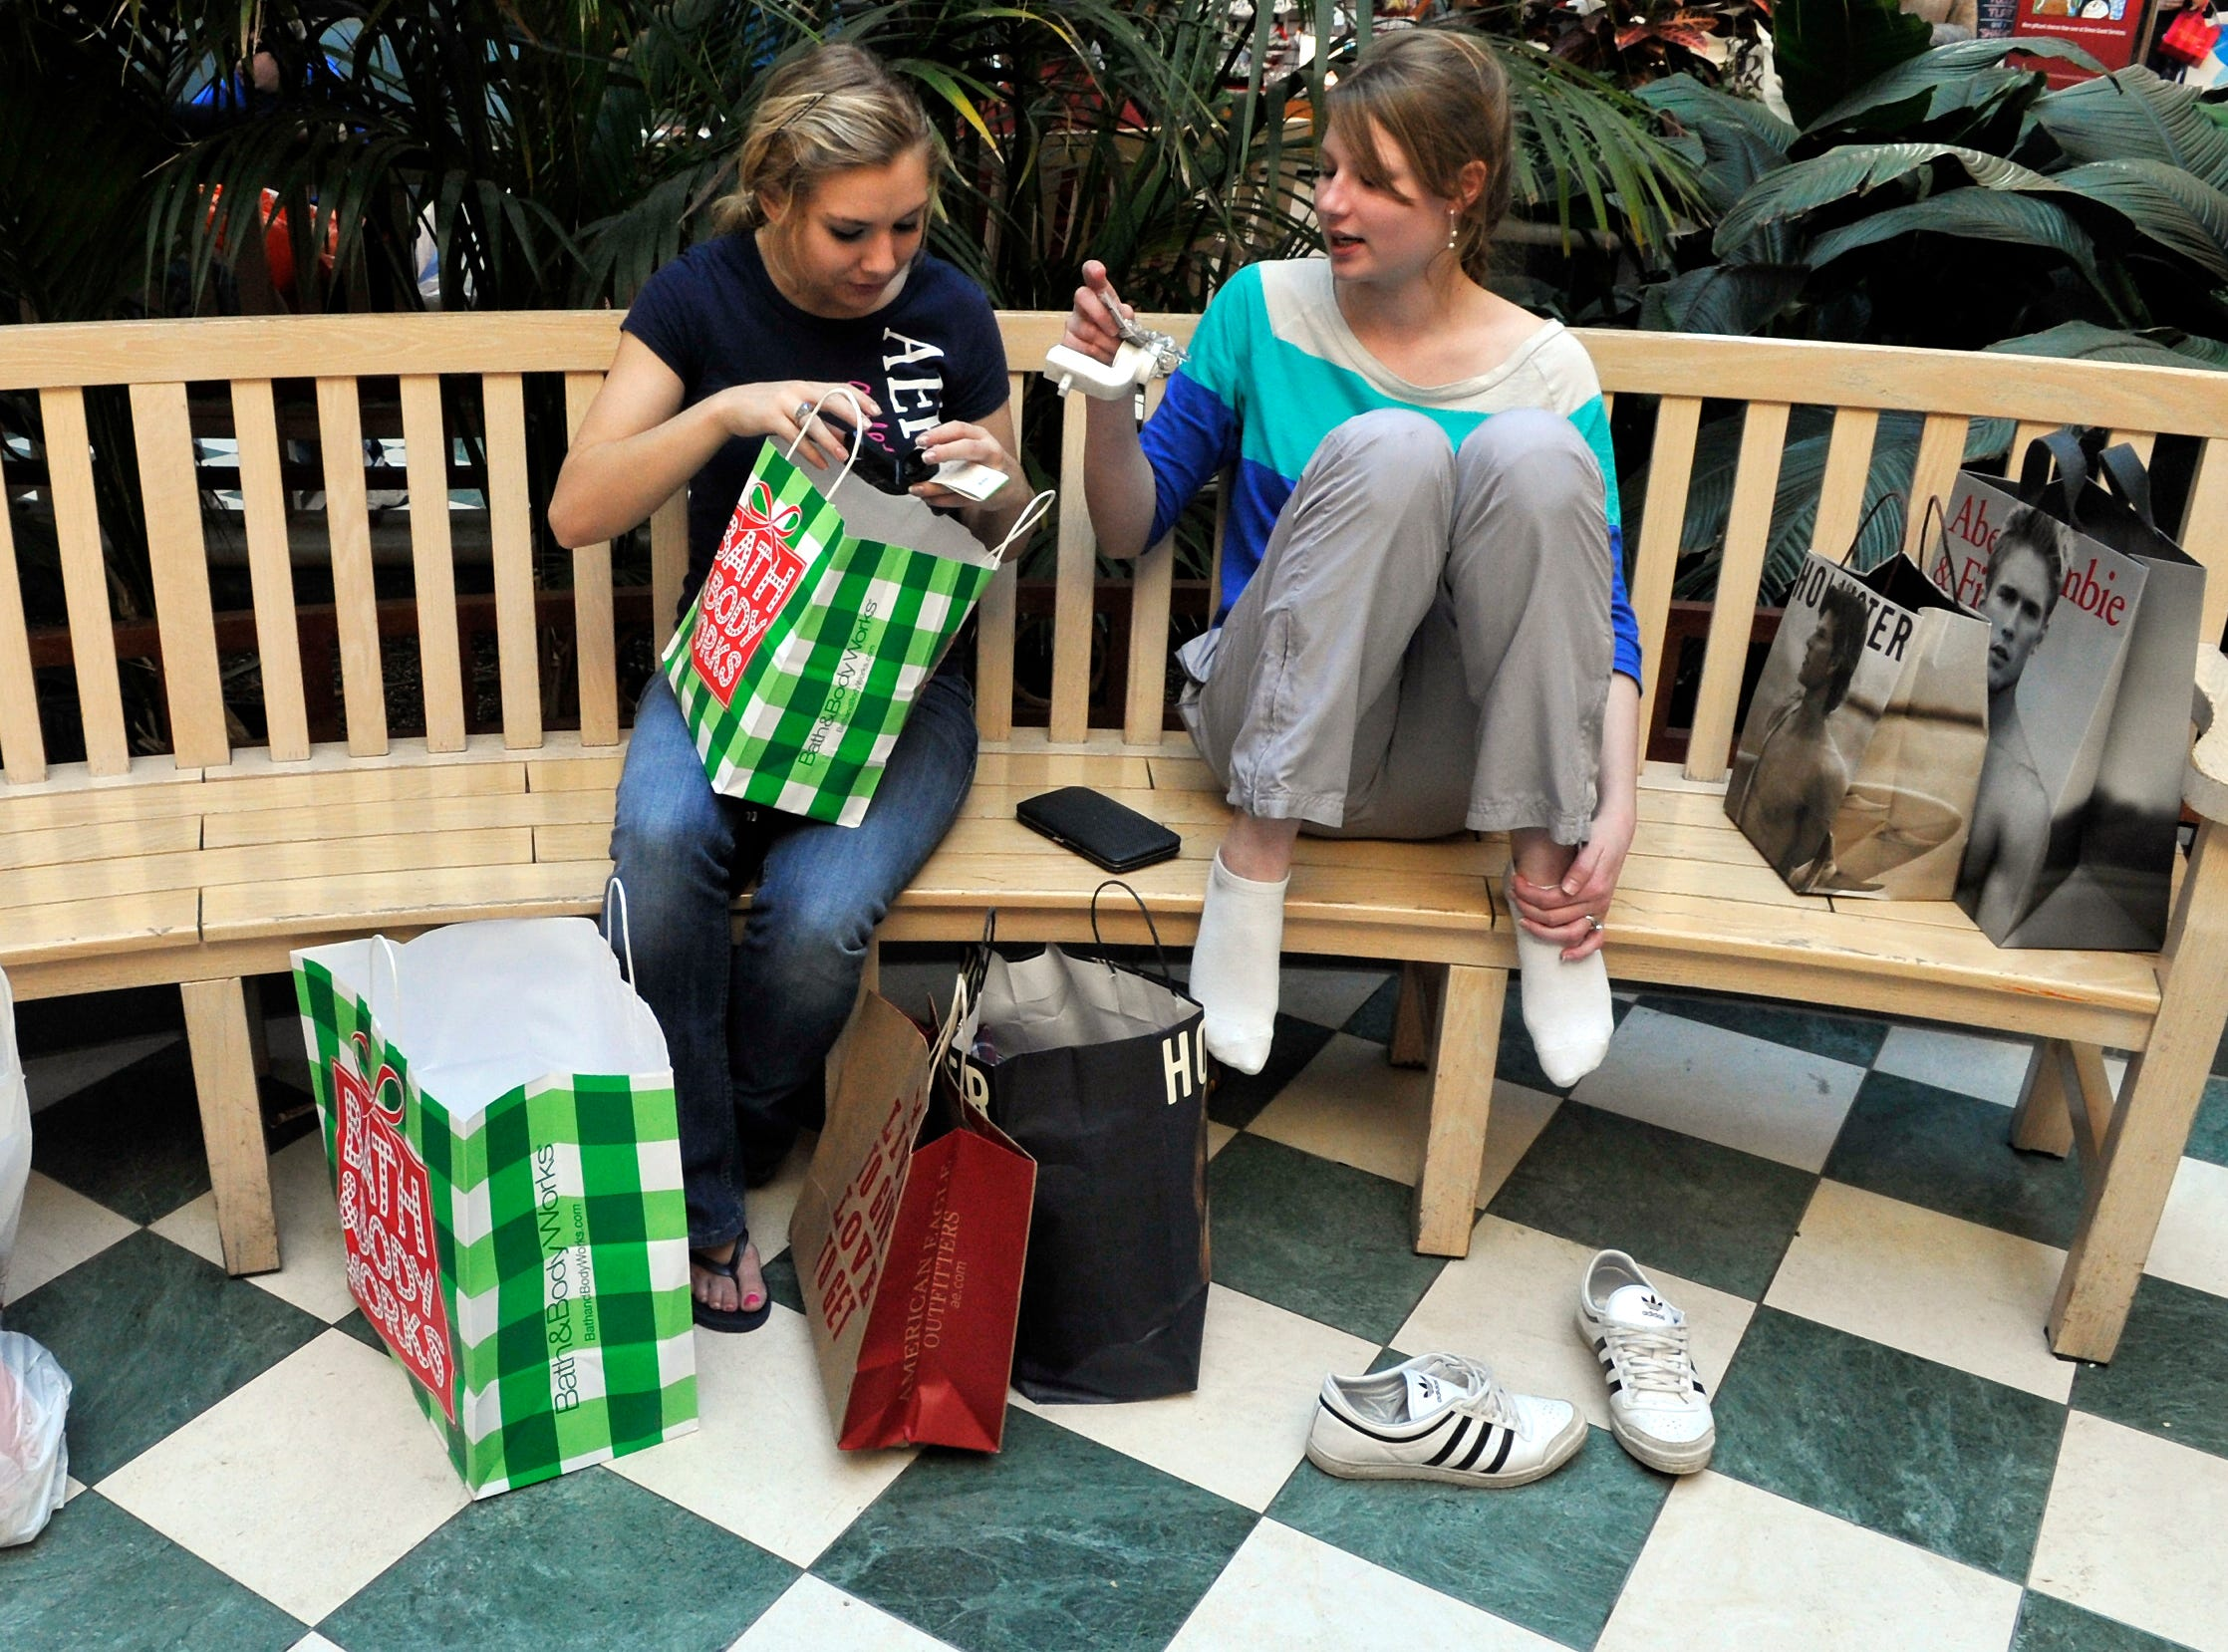 Gracie Clelland, 17, and her friend Ann Vogelsang a exchange student from Germany left Cosby in the early morning hours of Friday and arrived at West Town Mall at 2:30 am to start their Christmas shopping.Despite the  stores opening on the Thanksgiving holiday, shoppers flocked to West Town Mall on black Friday looking to find discounts on everything from appliances and televisions to toys and clothes.  Some Black Friday shoppers arrived at the West Town Mall for the Midnight opening and were still there well after dawn.